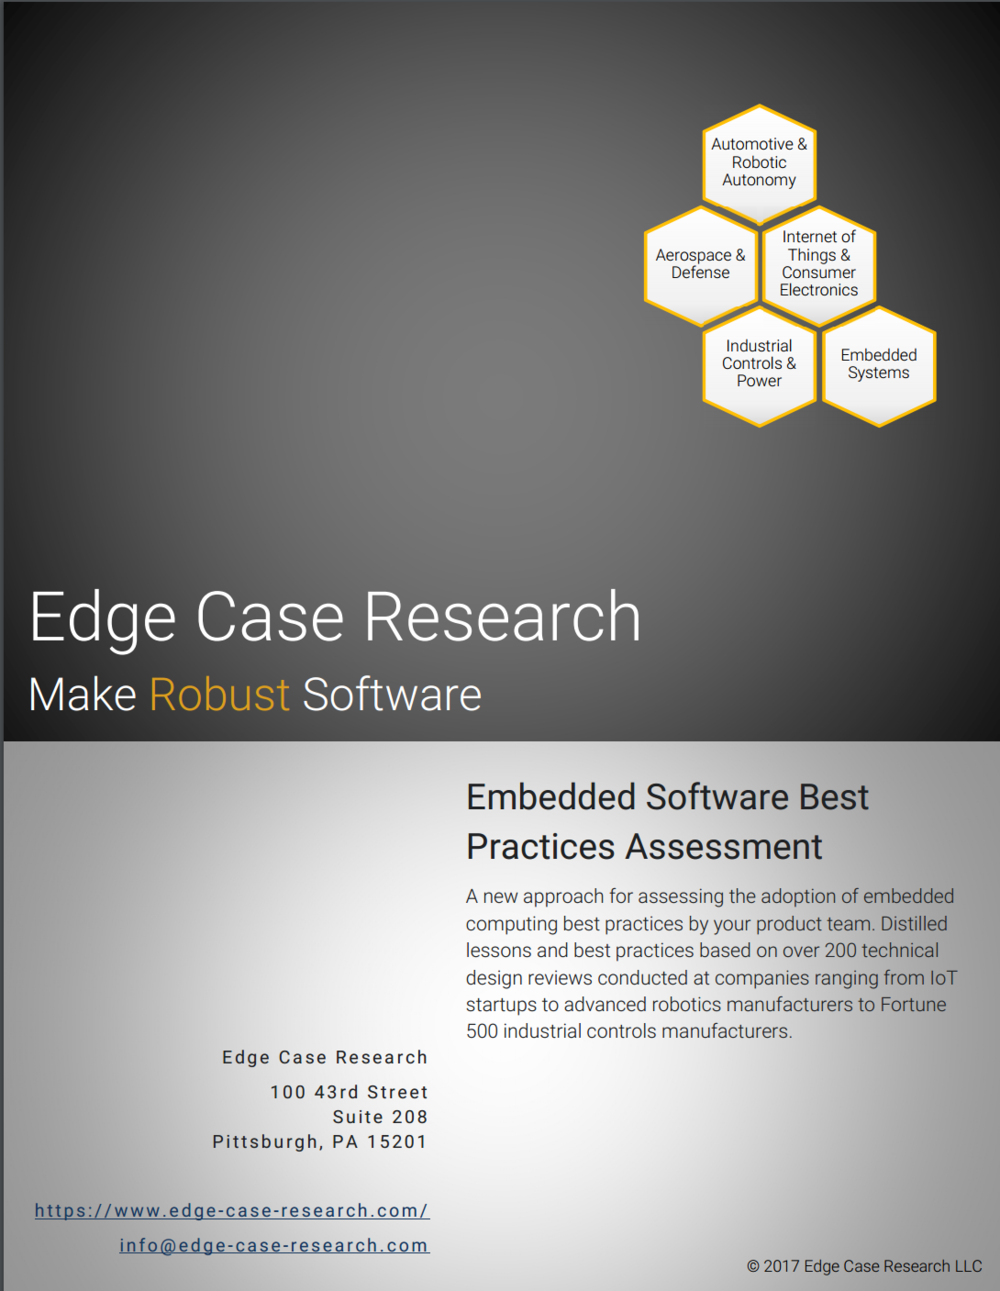 Click on the image above for more information on how to improve your embedded software